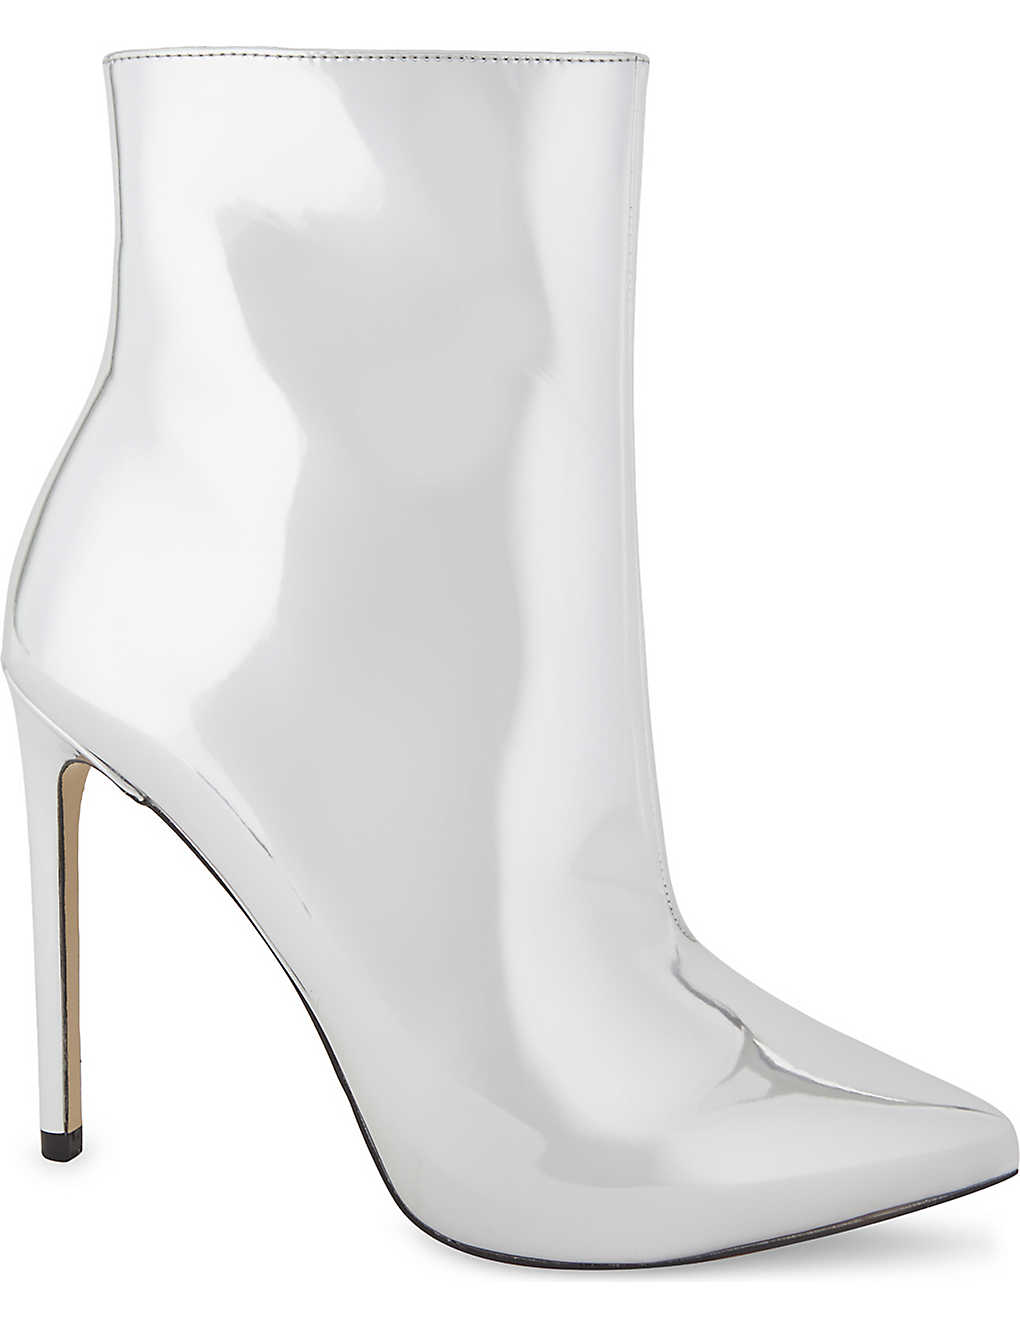 ALDO: Loreni metallic high heeled boots